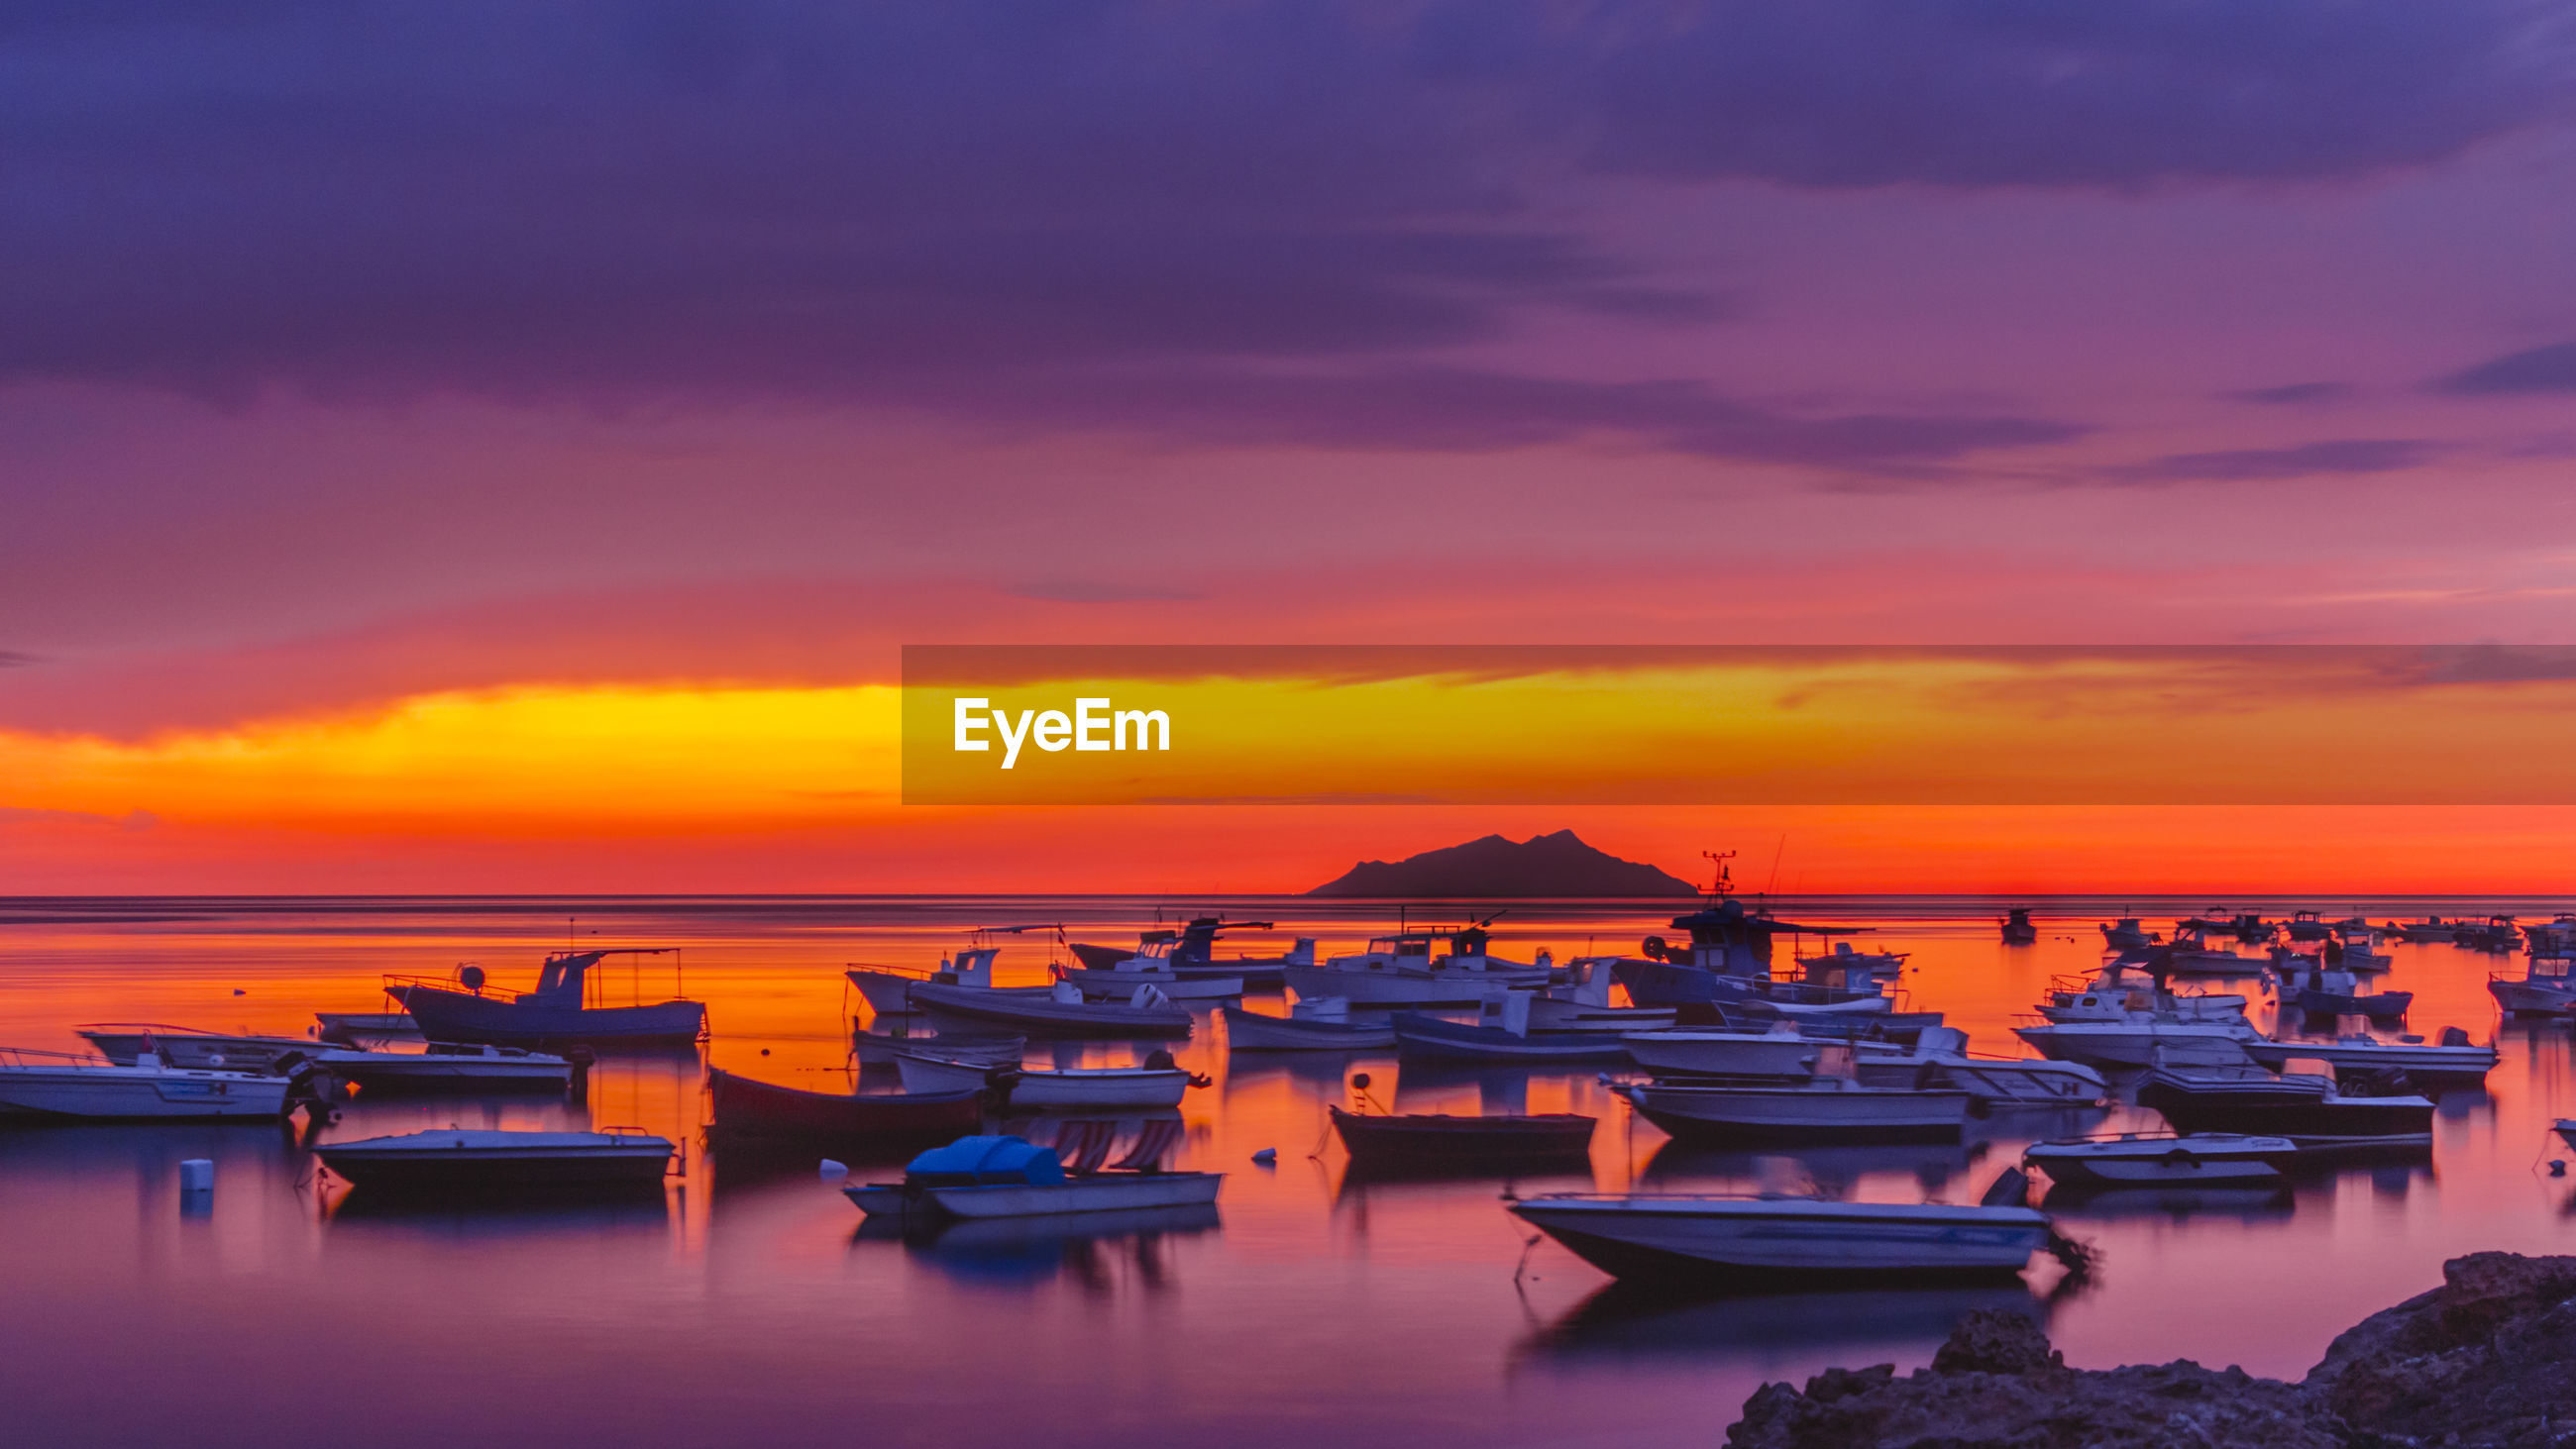 Boats moored in sea against pink sky during sunset